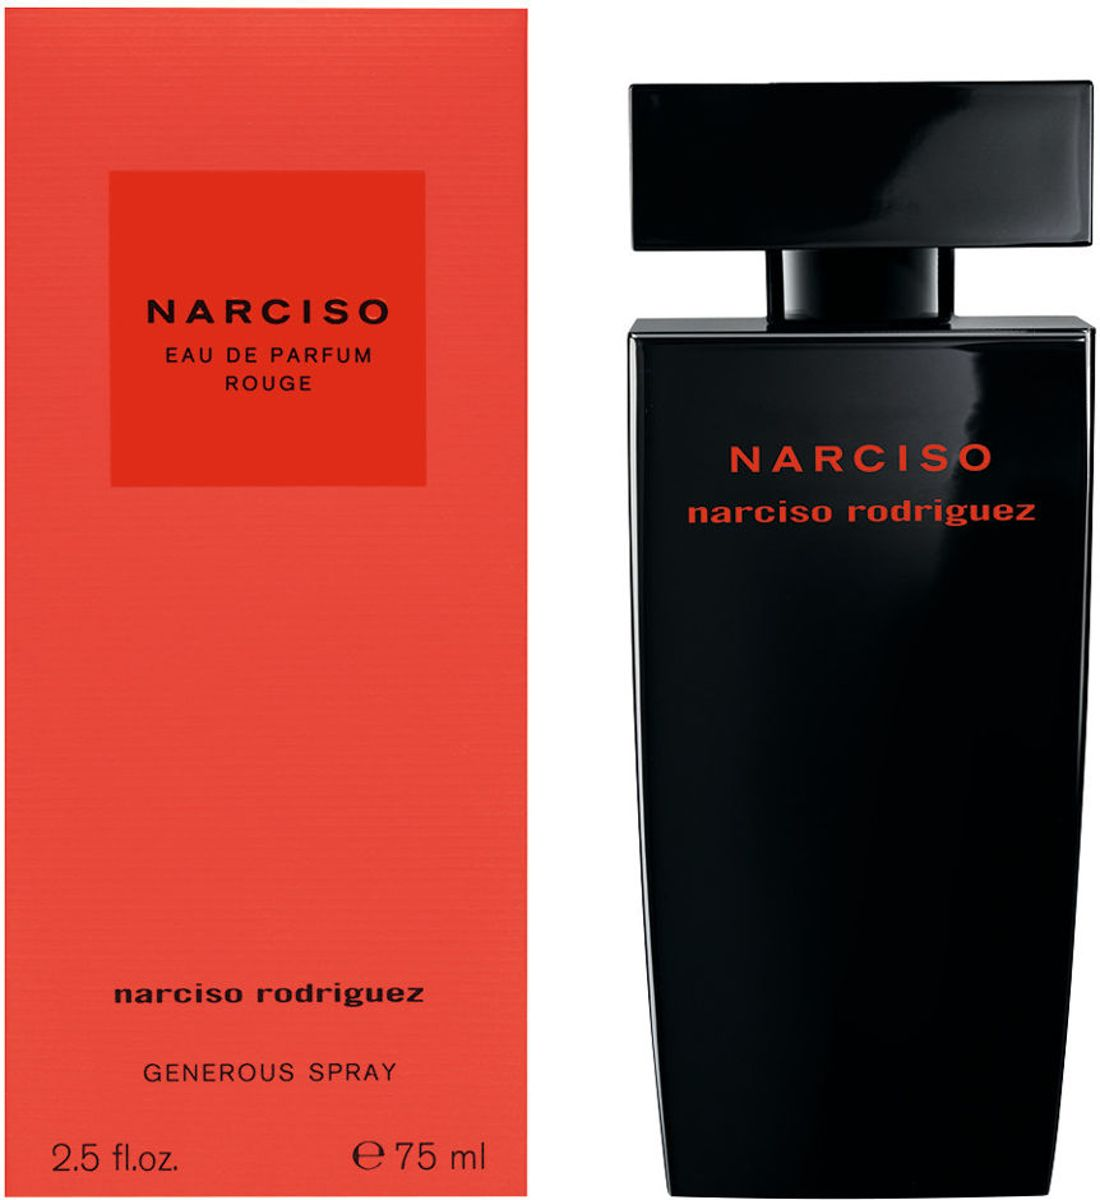 Narciso Rodriguez NARCISO ROUGE edp spray generous spray 75 ml